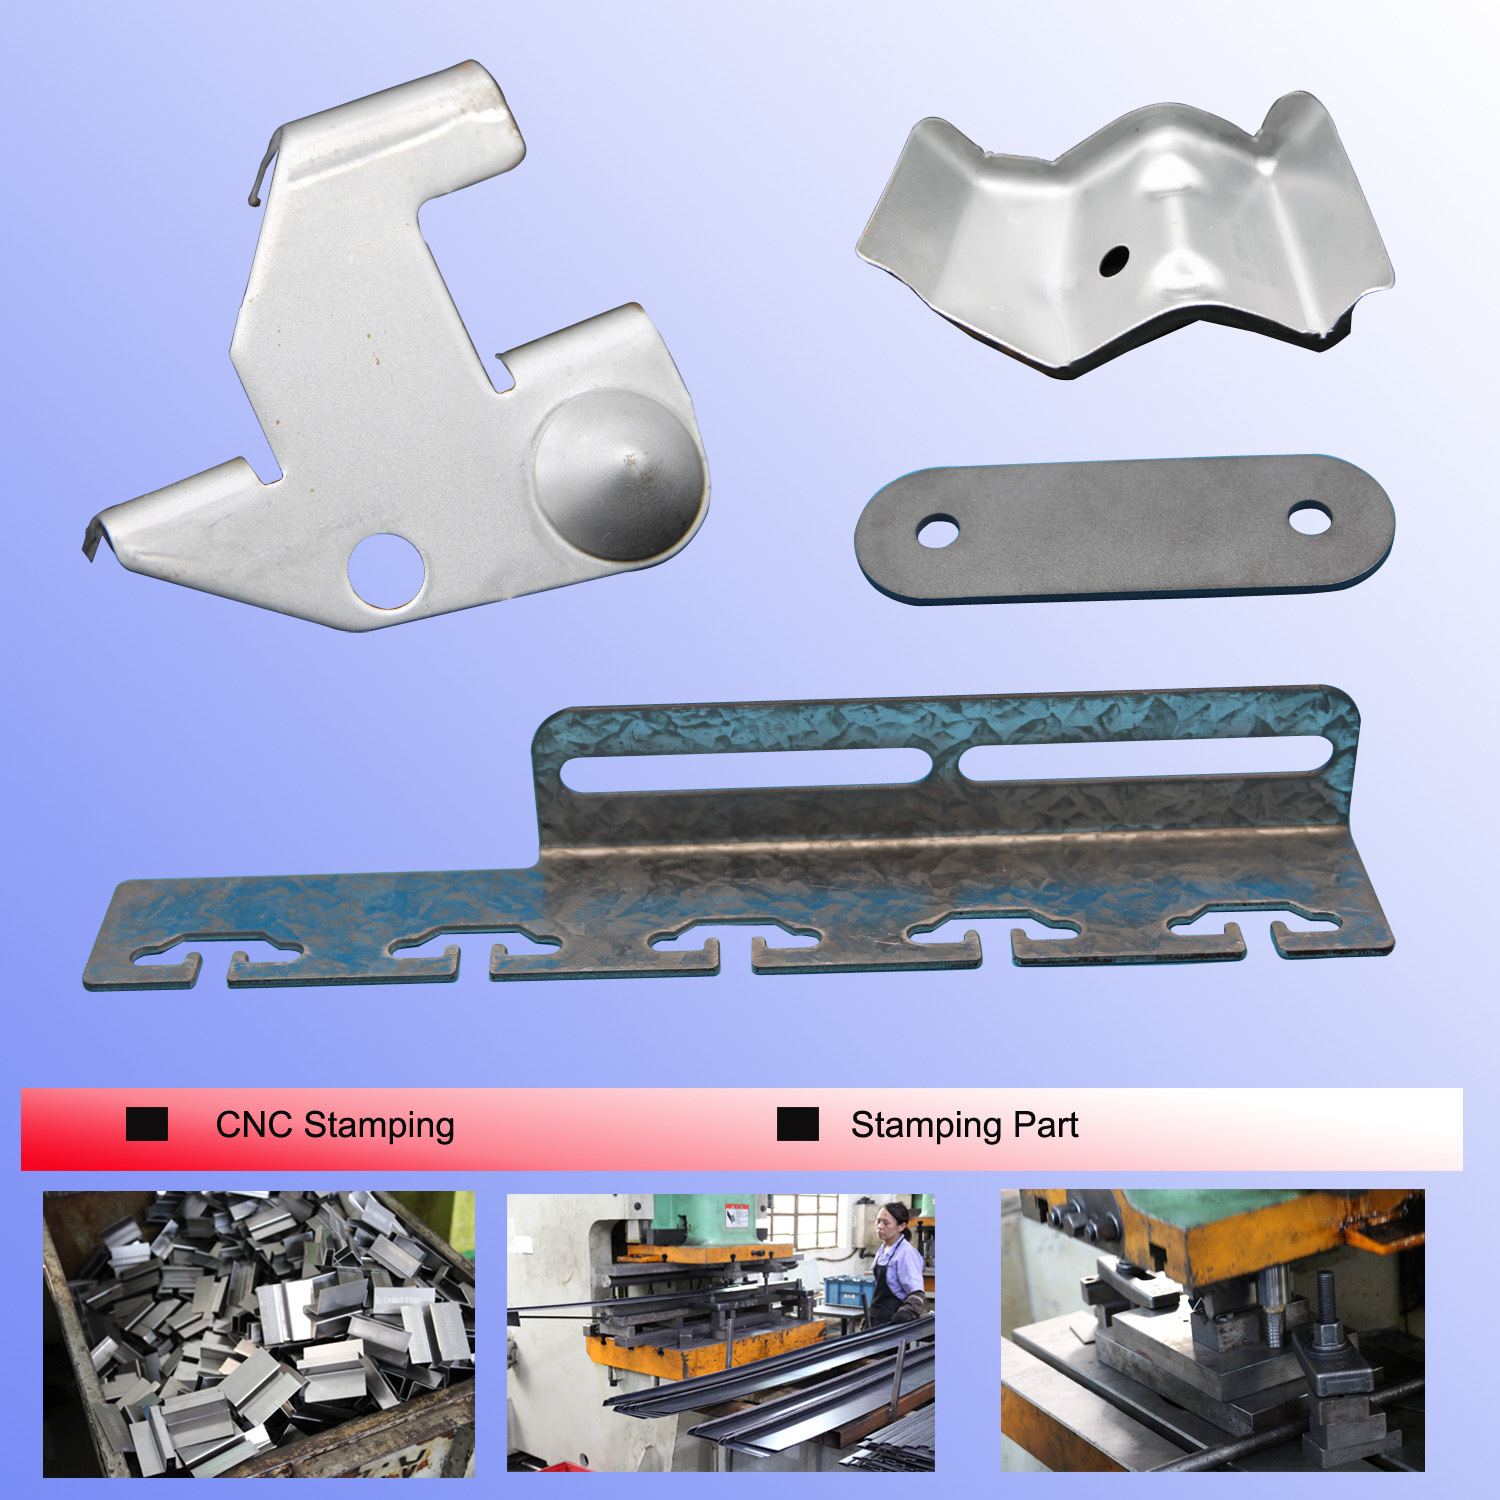 Precision Computer Mobile Body Alloy Stainless Motor Auto Spare Car Aluminum Metal Steel CNC Stamping Part (ABS, plastic, machined, welding, laser, cutting)